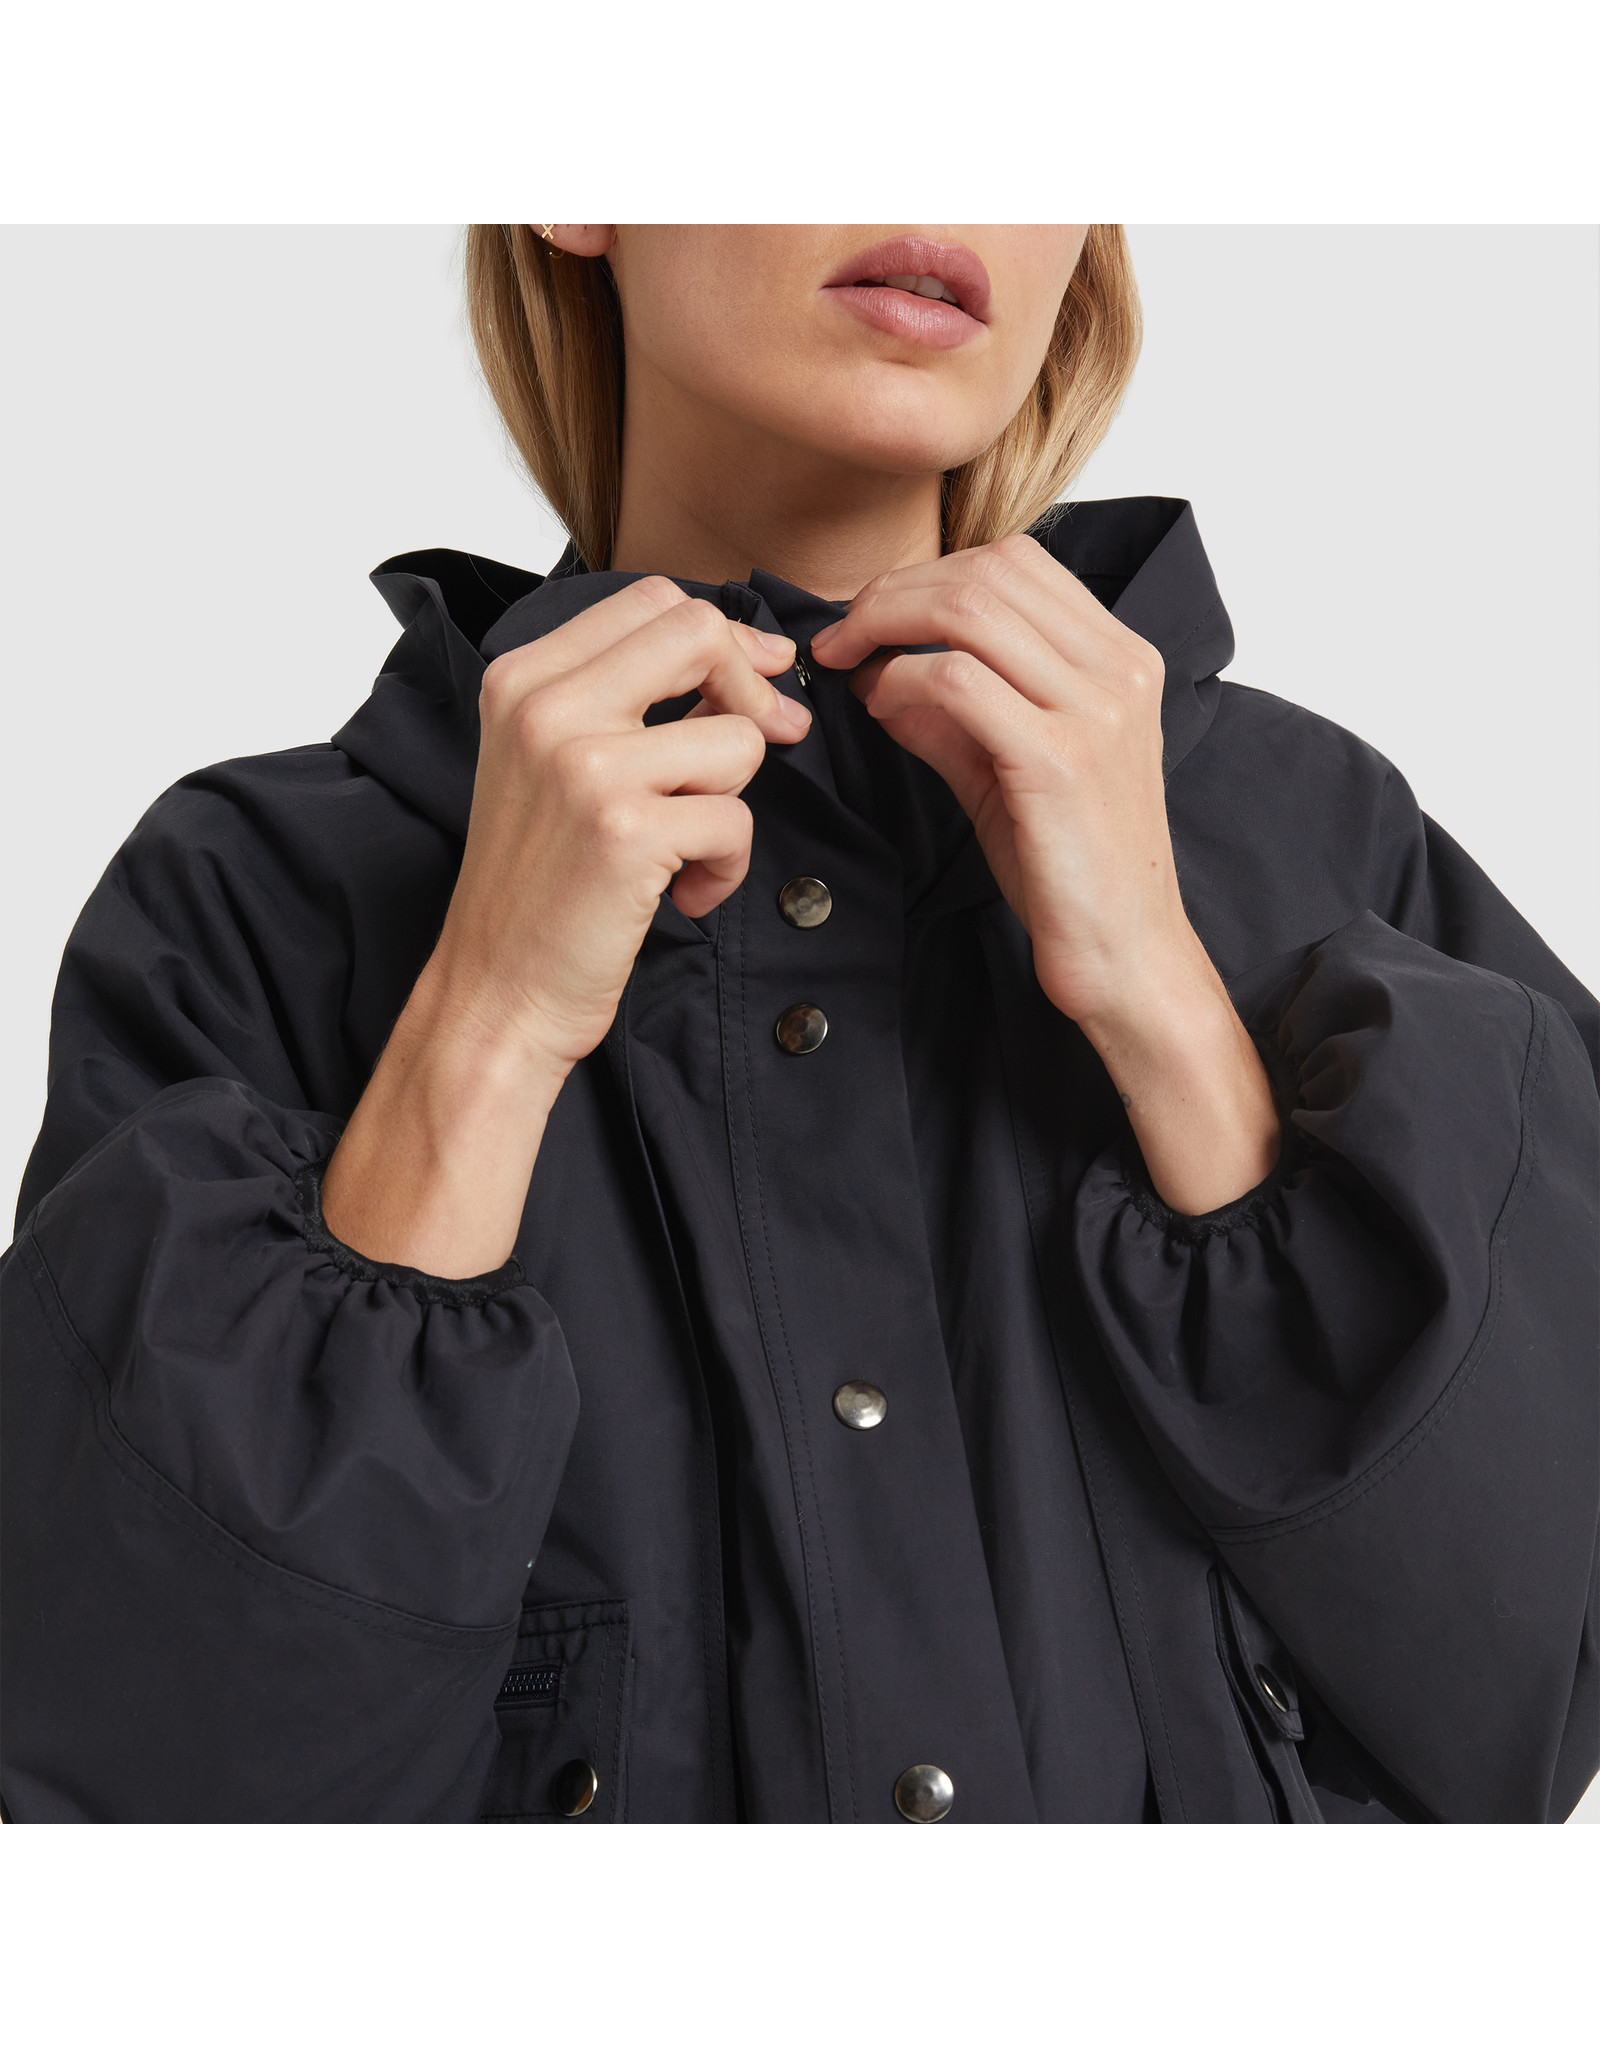 G. Label G. Label Carolyn Utility Performance Jacket (Color: Navy, Size: S)